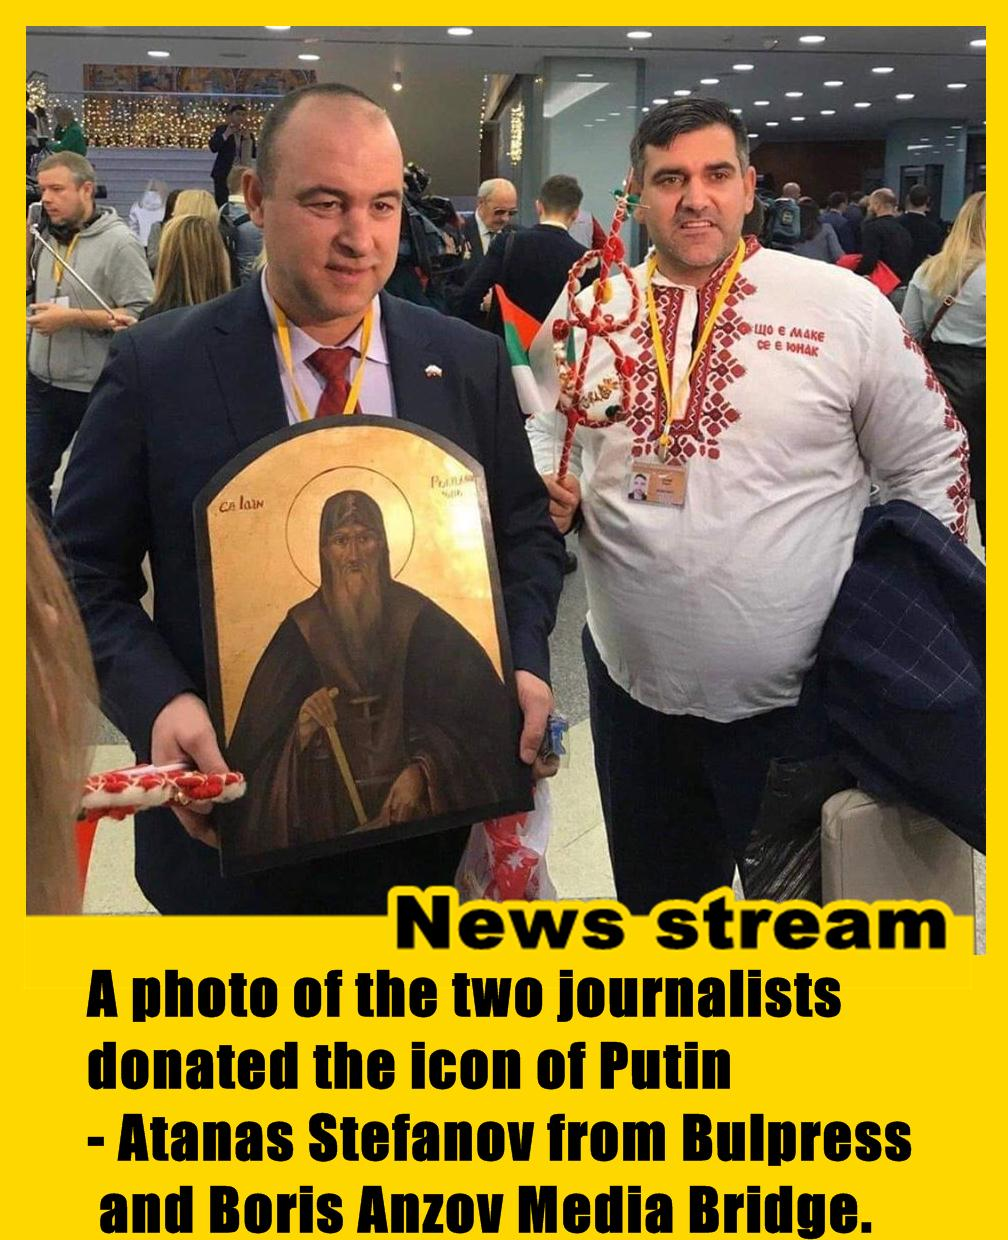 A photo of the two journalists donated the icon of Putin - Atanas Stefanov from Bulpress and Boris Anzov Media Bridge.